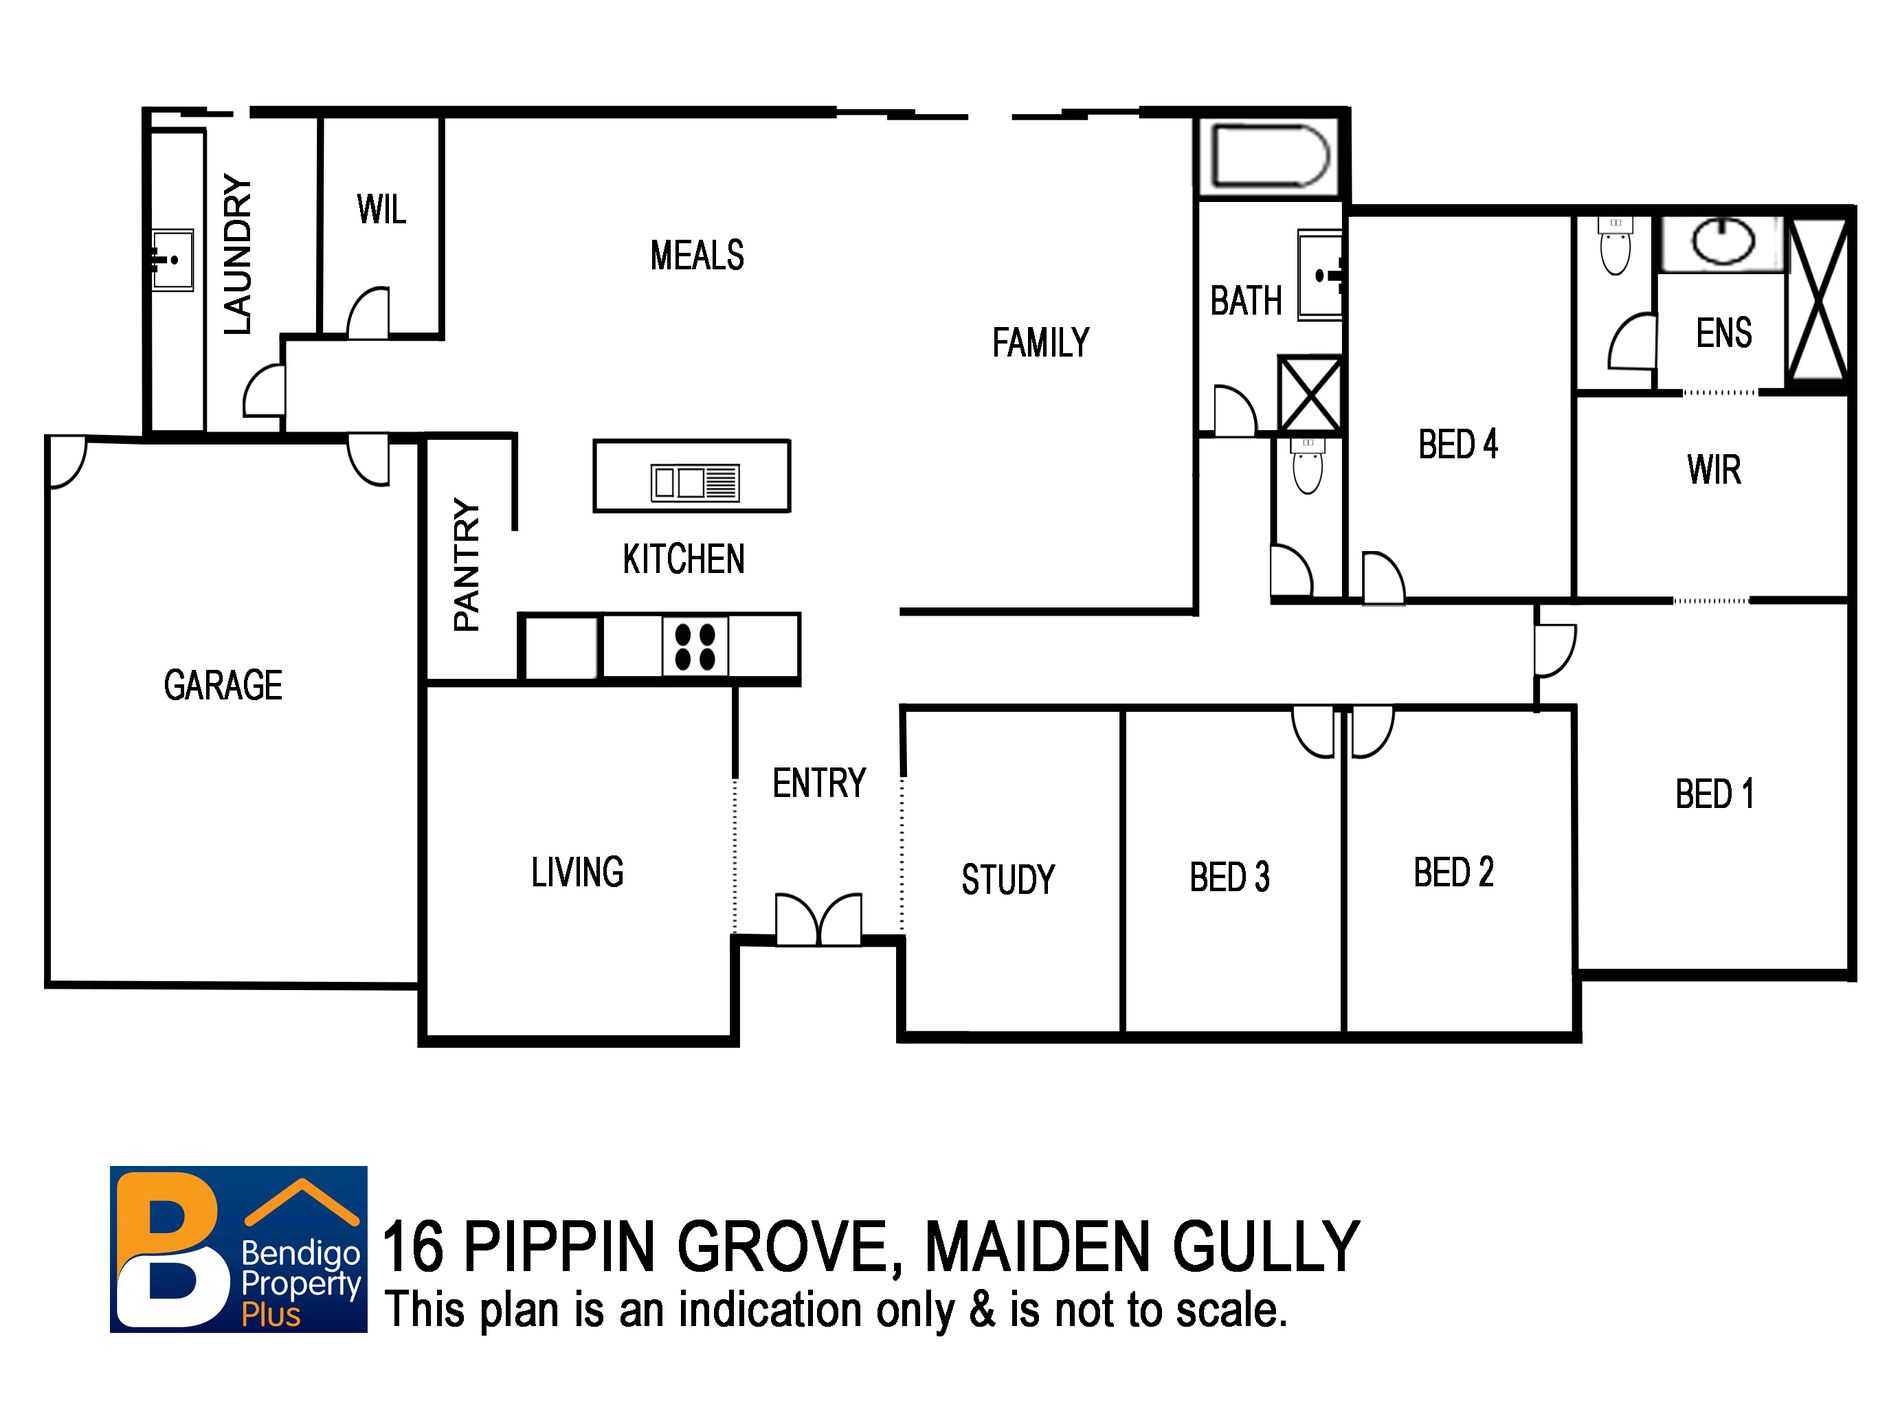 16 Pippin Grove, Maiden Gully